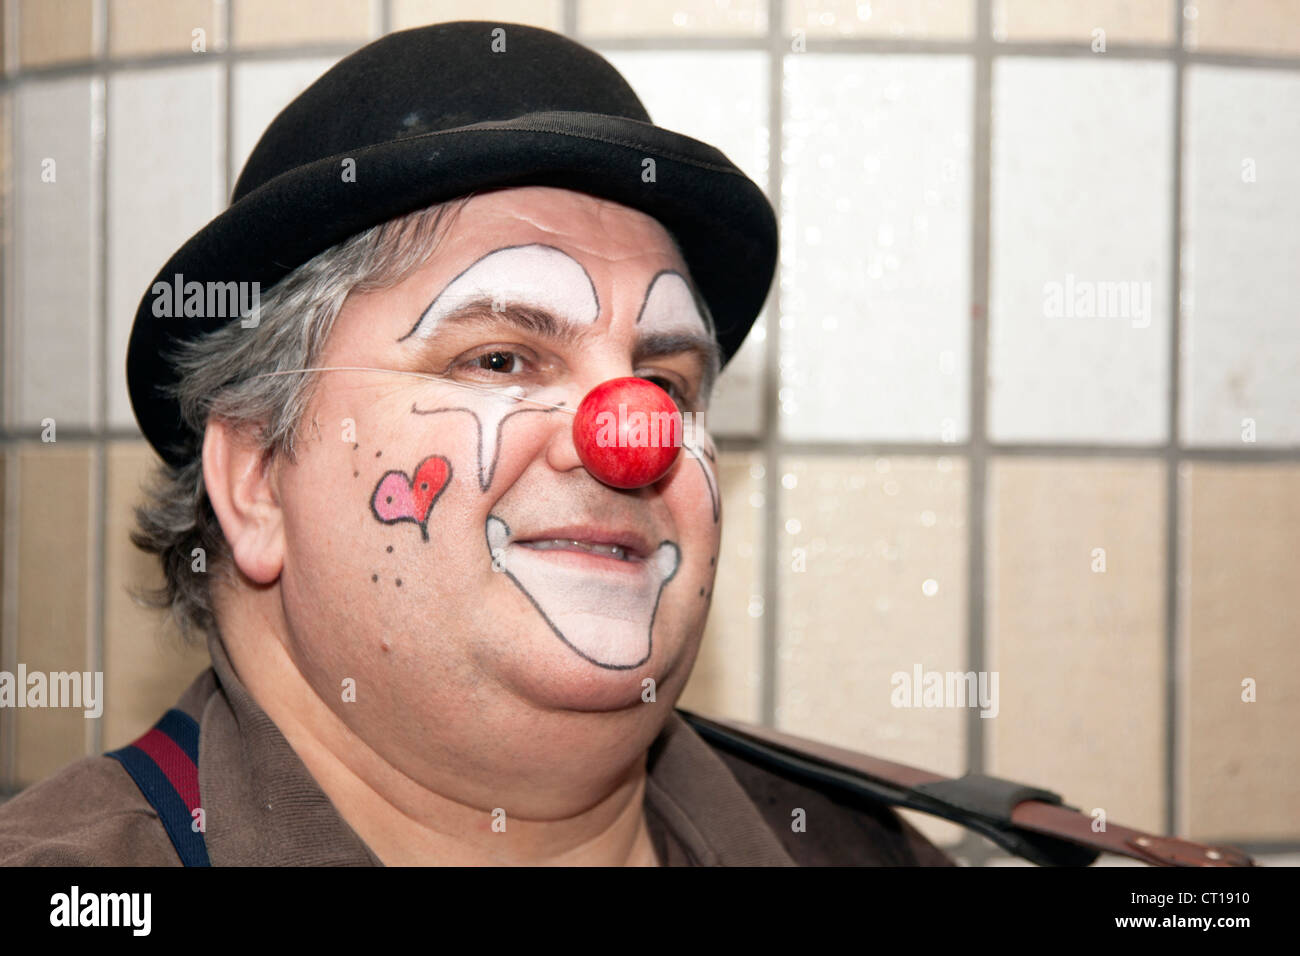 A male in a clown look. - Stock Image